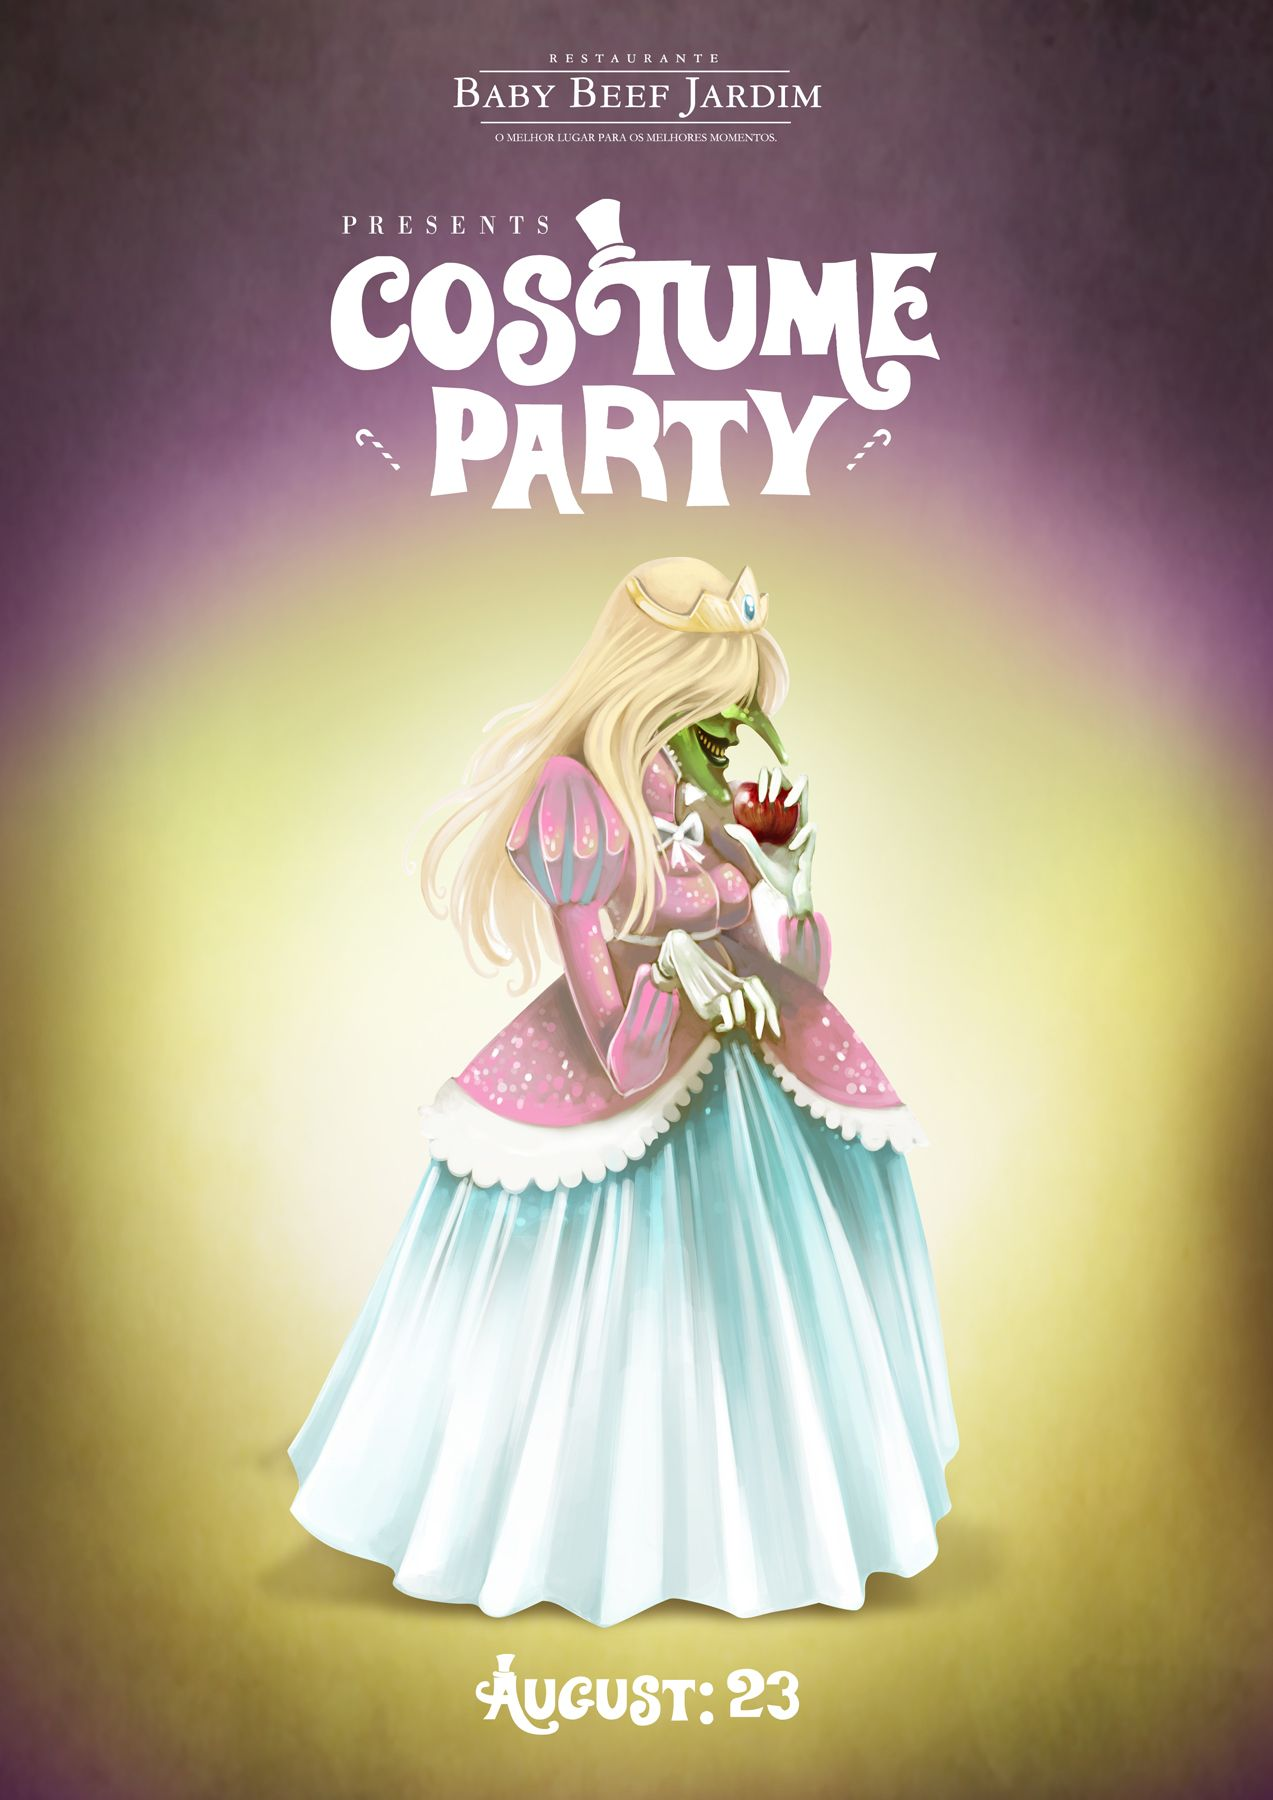 Baby Beef Jardim Costume Party, Witch (avec images